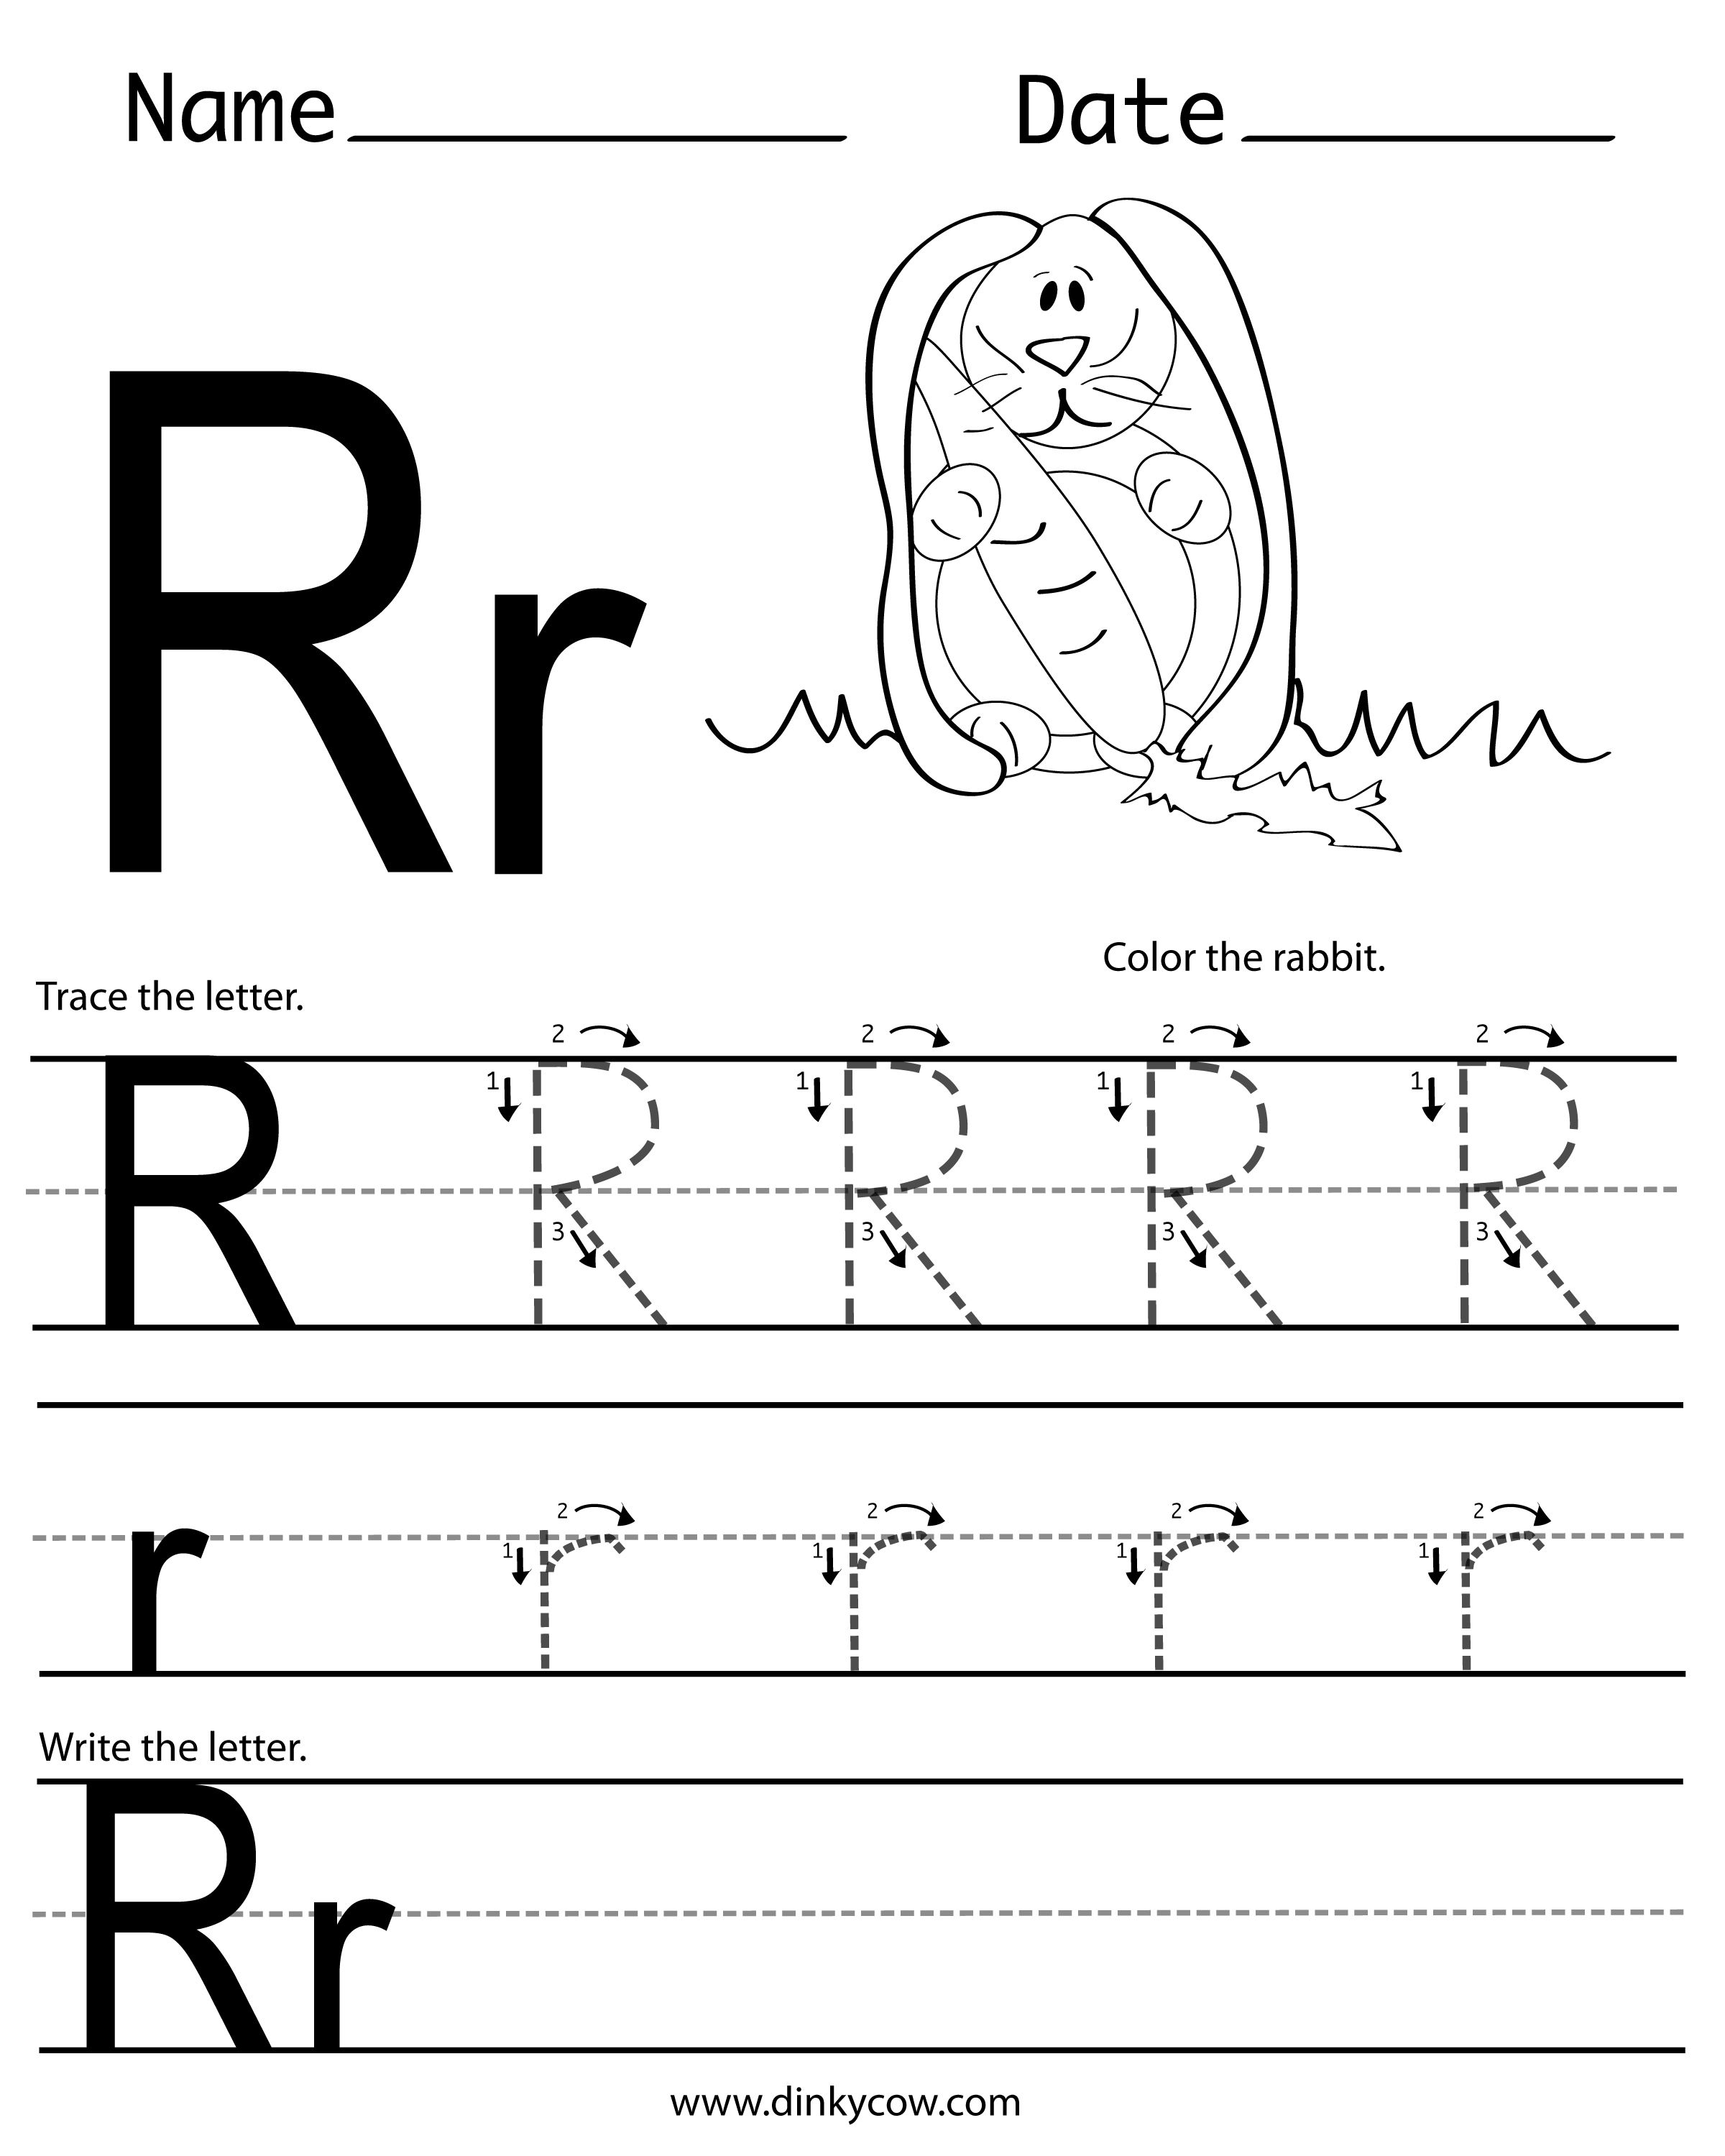 r-free-handwriting-worksheet.jpg 2,4003,000 pixels